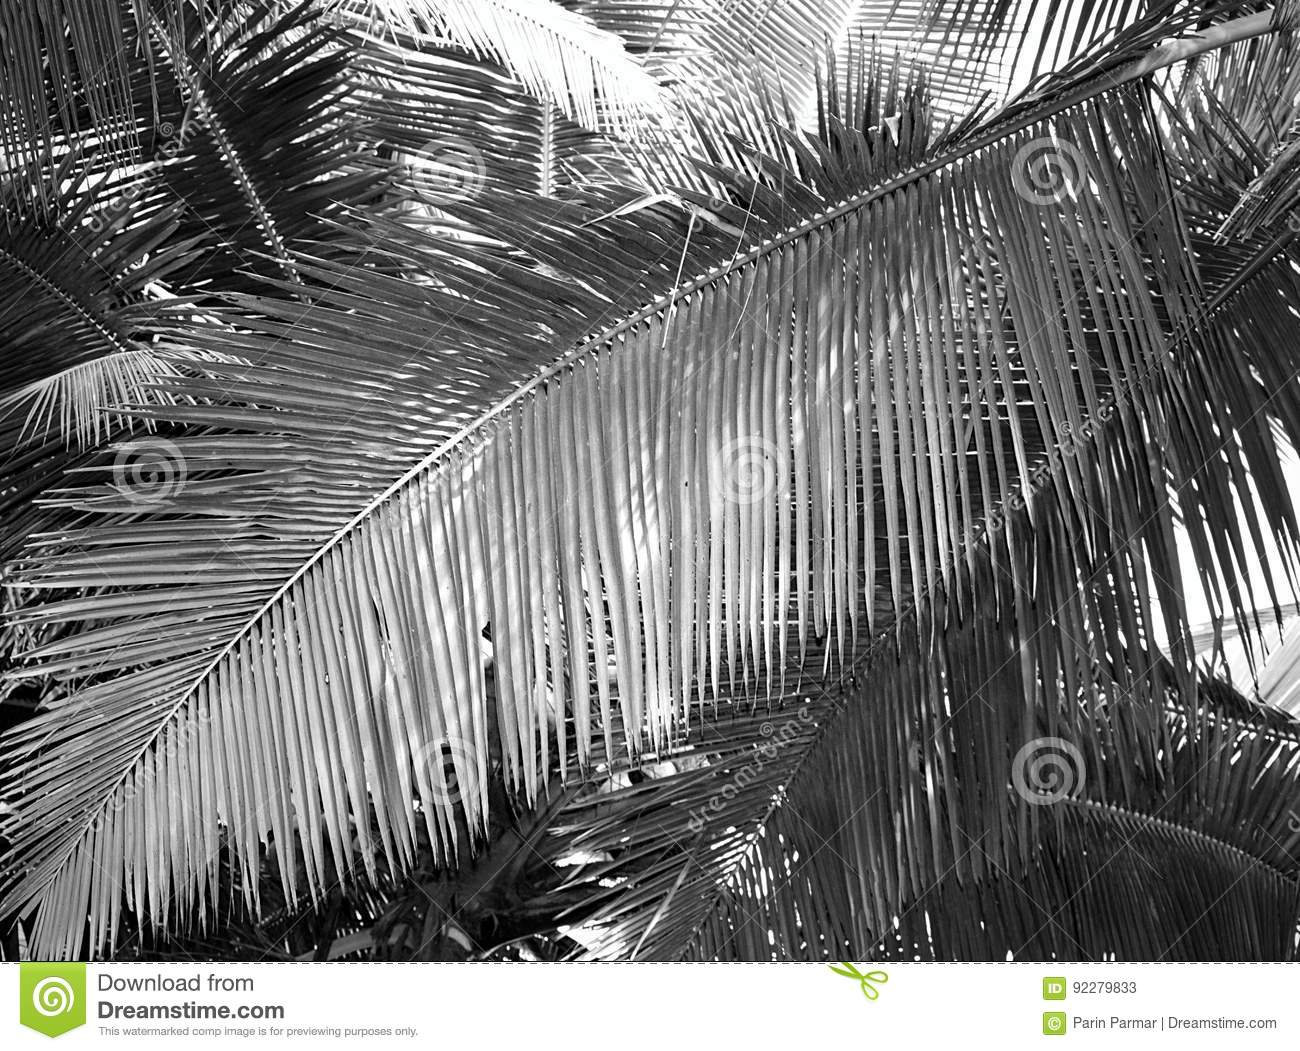 Large Palm Leaf - Abstract Background in Grey Scale